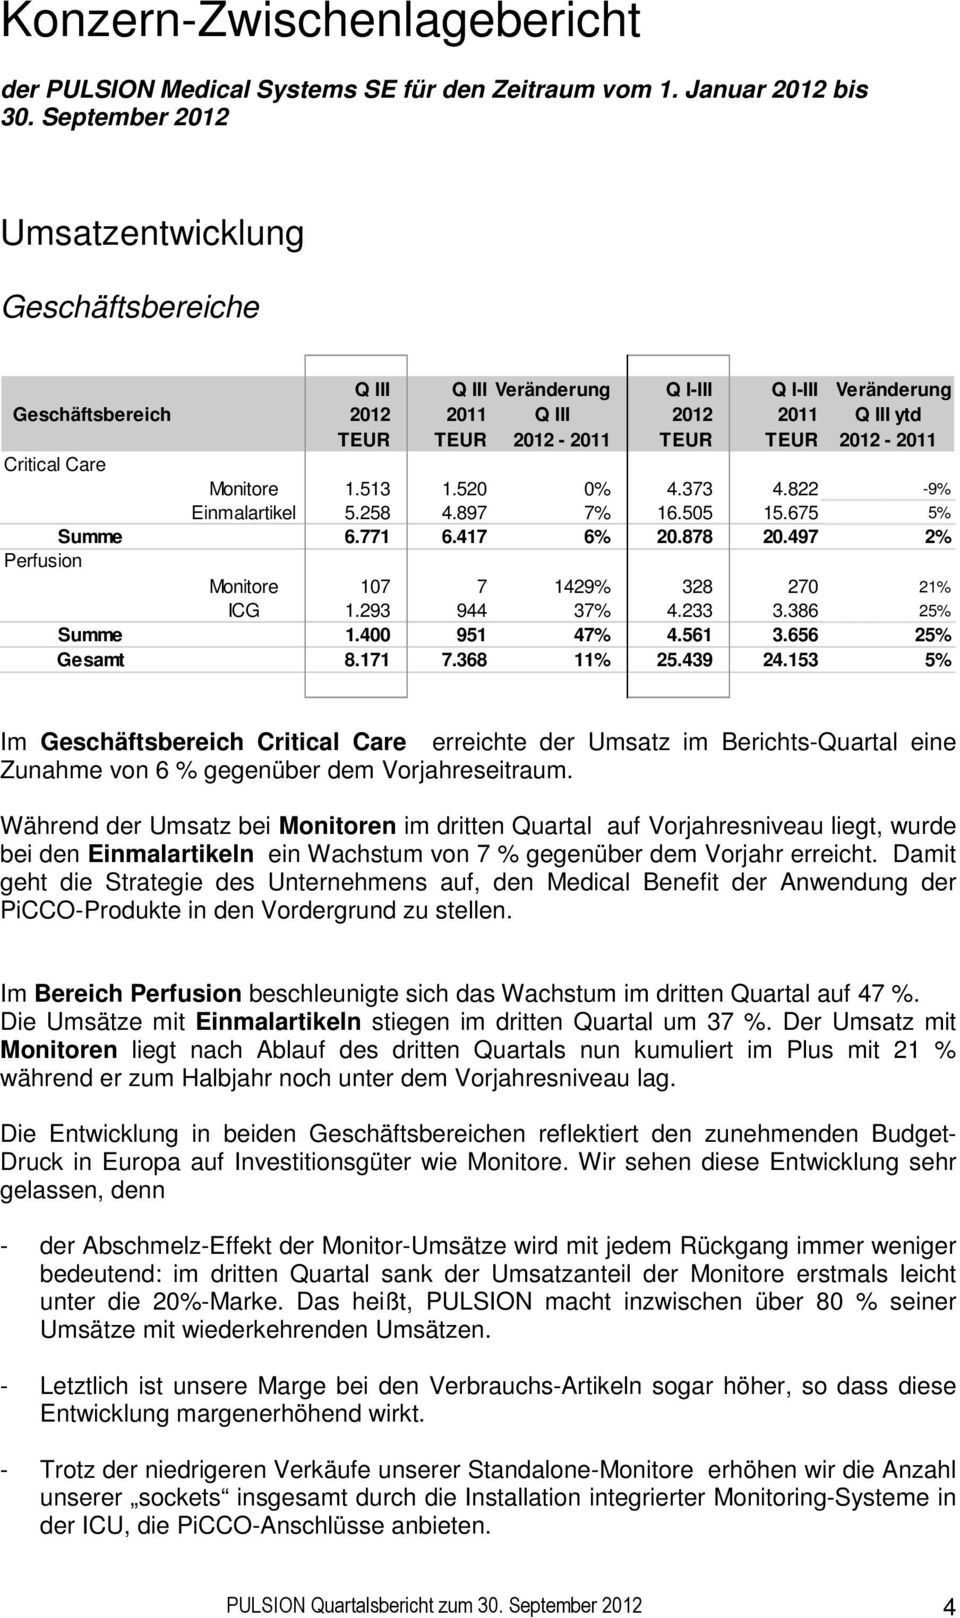 Critical Care Monitore 1.513 1.520 0% 4.373 4.822-9% Einmalartikel 5.258 4.897 7% 16.505 15.675 5% Summe 6.771 6.417 6% 20.878 20.497 2% Perfusion Monitore 107 7 1429% 328 270 21% ICG 1.293 944 37% 4.